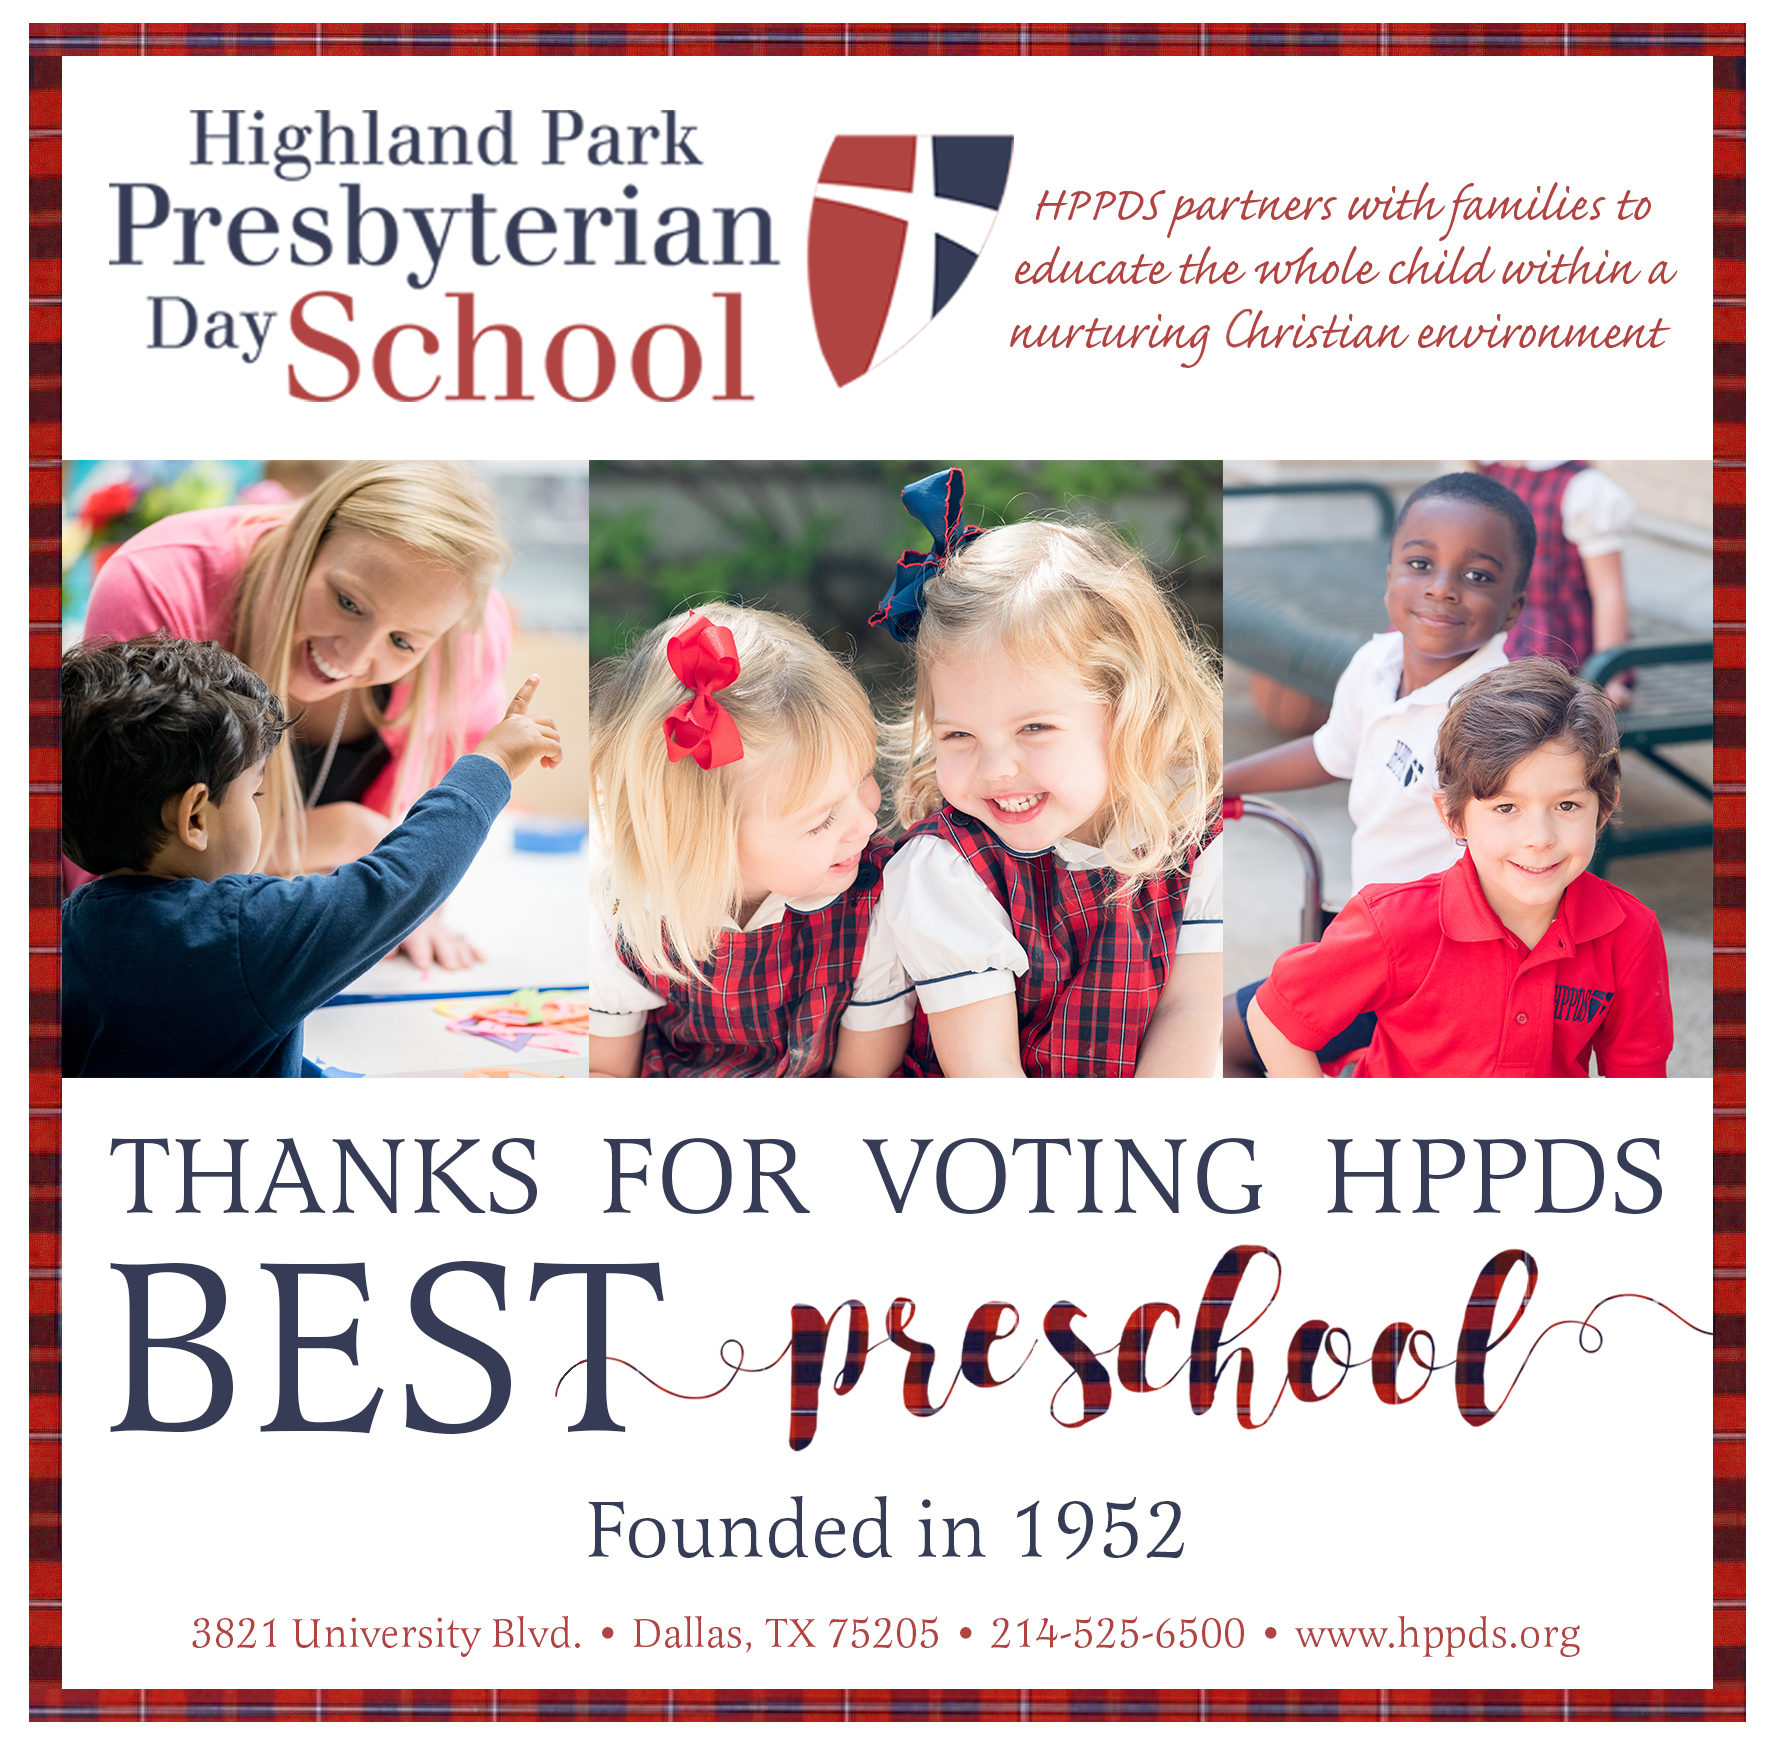 Thanks for Voting us Best Preschool!